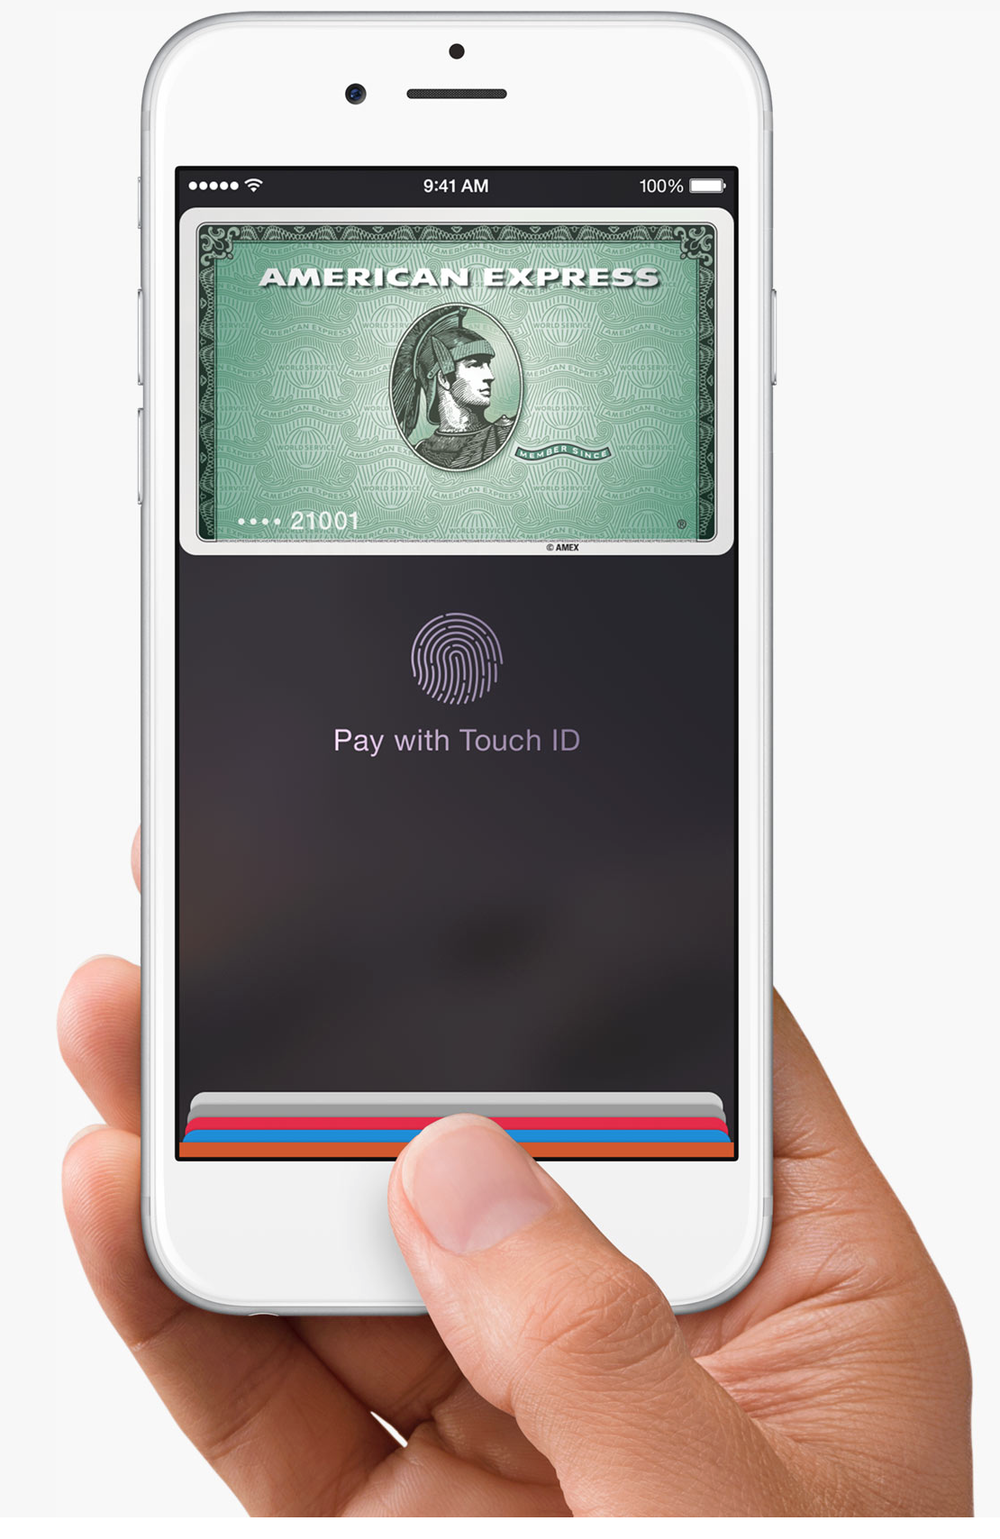 Apple Pay makes use of the NFC chip on the new Apple hardware along with the Touch IDs for authorizing payments securely and conveniently (Source: Apple.com)